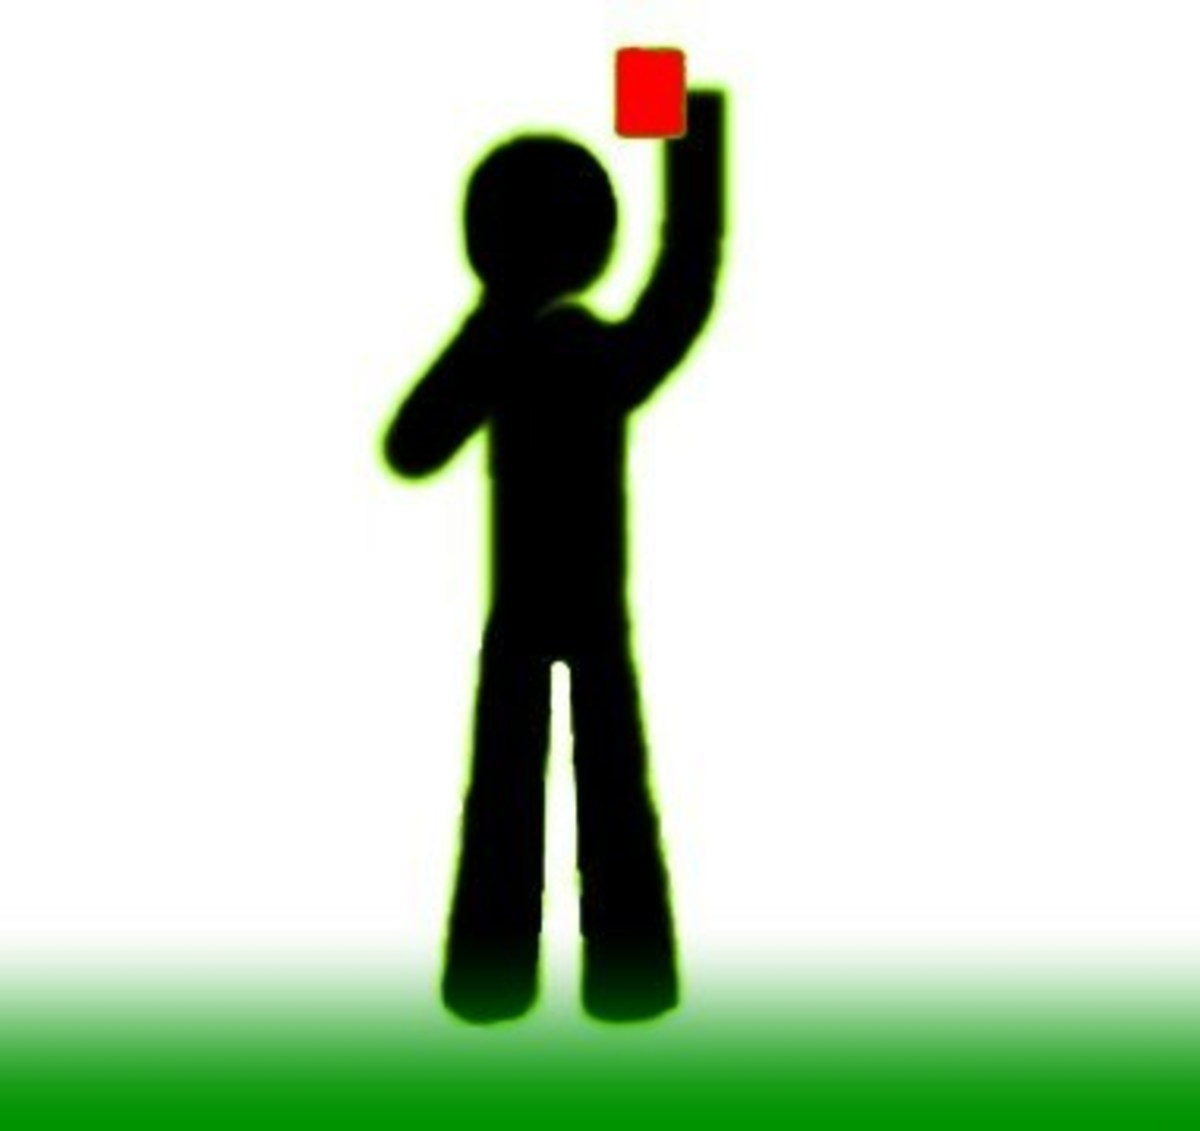 Showing Red Card–Player Dismissal